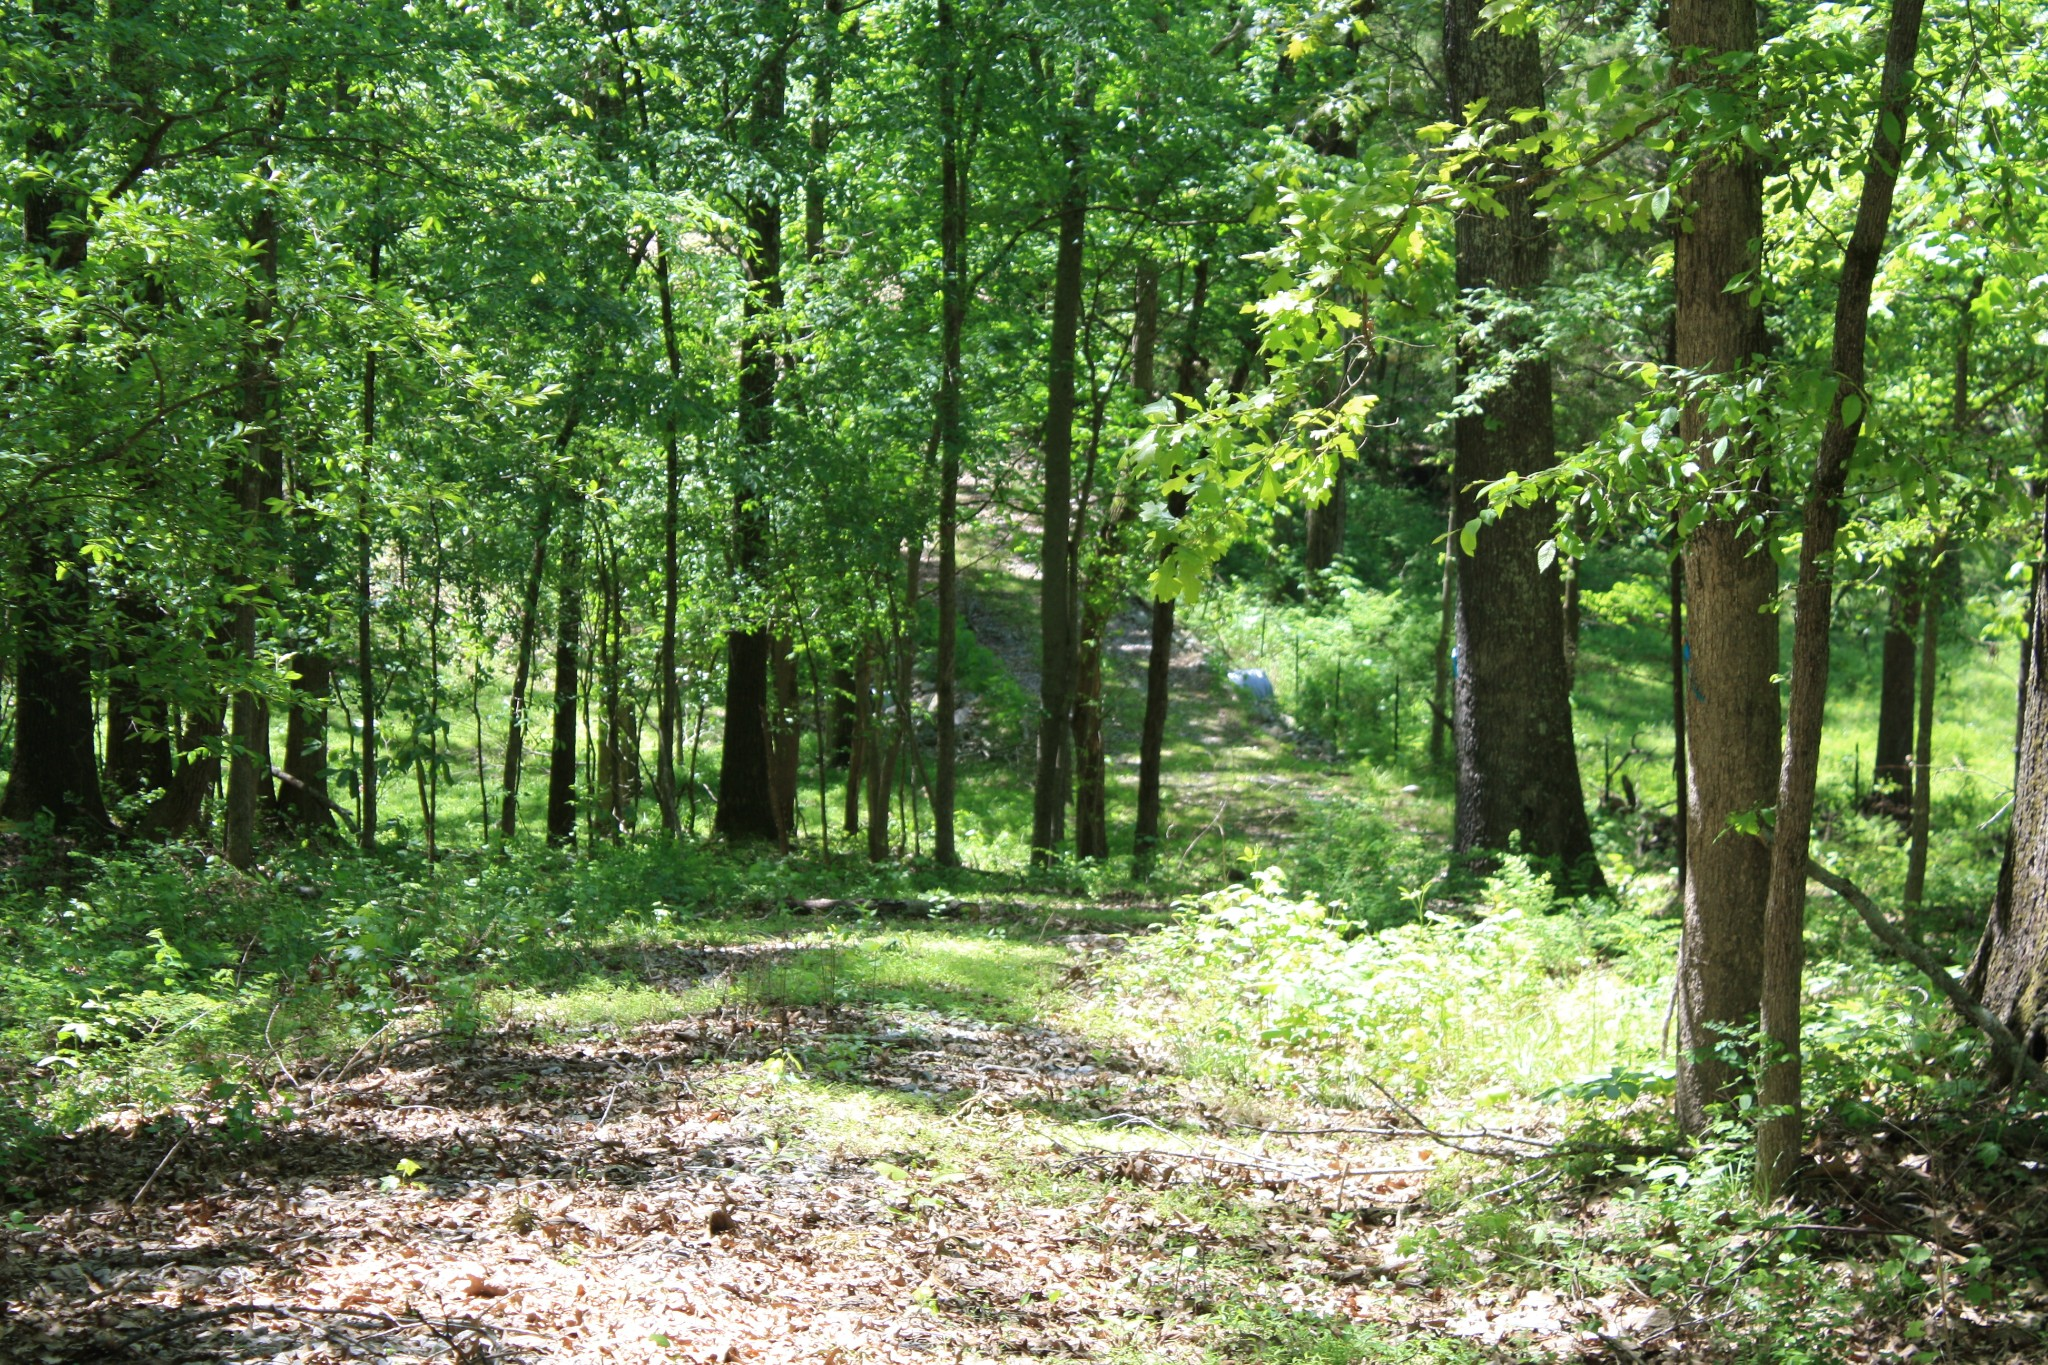 0 Guices Creek Road, Cumberland City, TN 37050 - Cumberland City, TN real estate listing